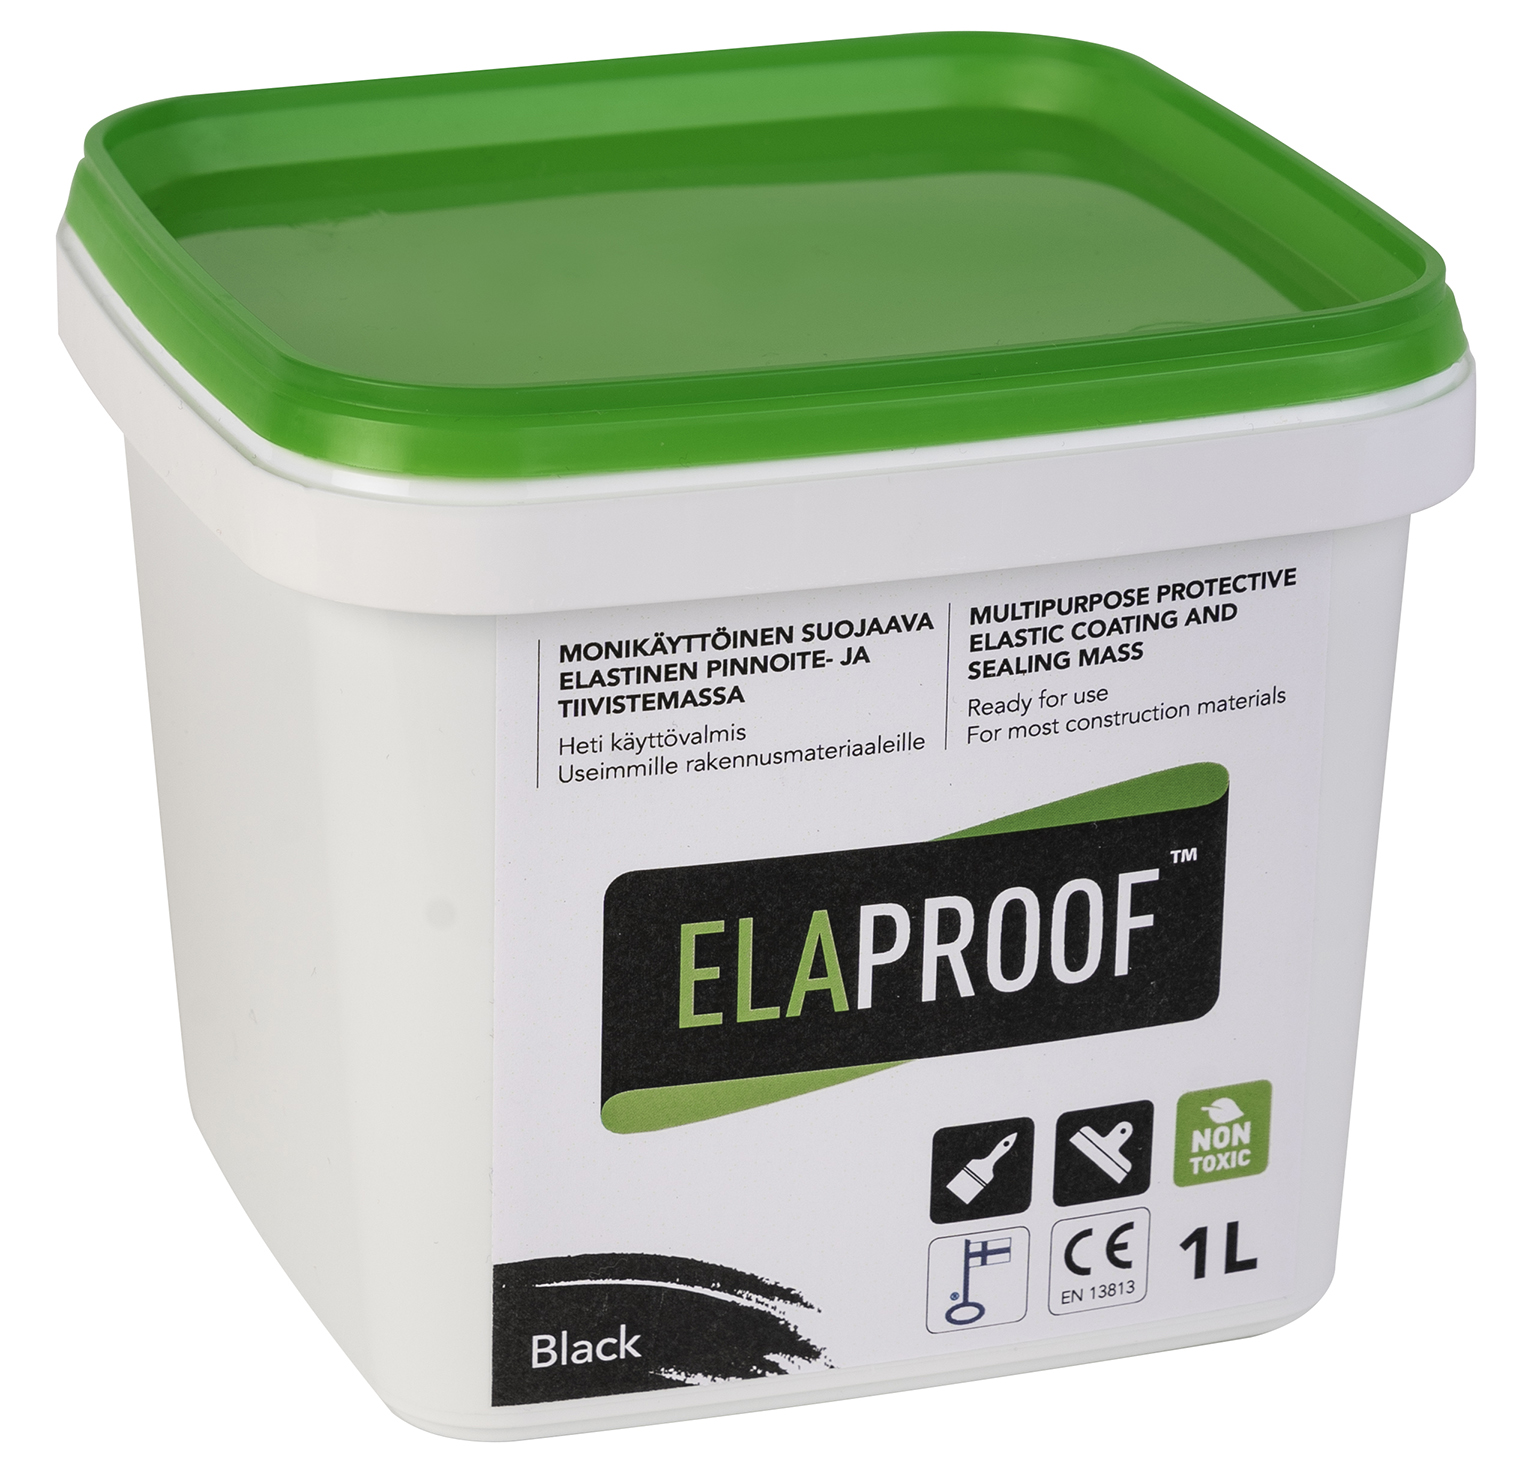 elaproof-packaging